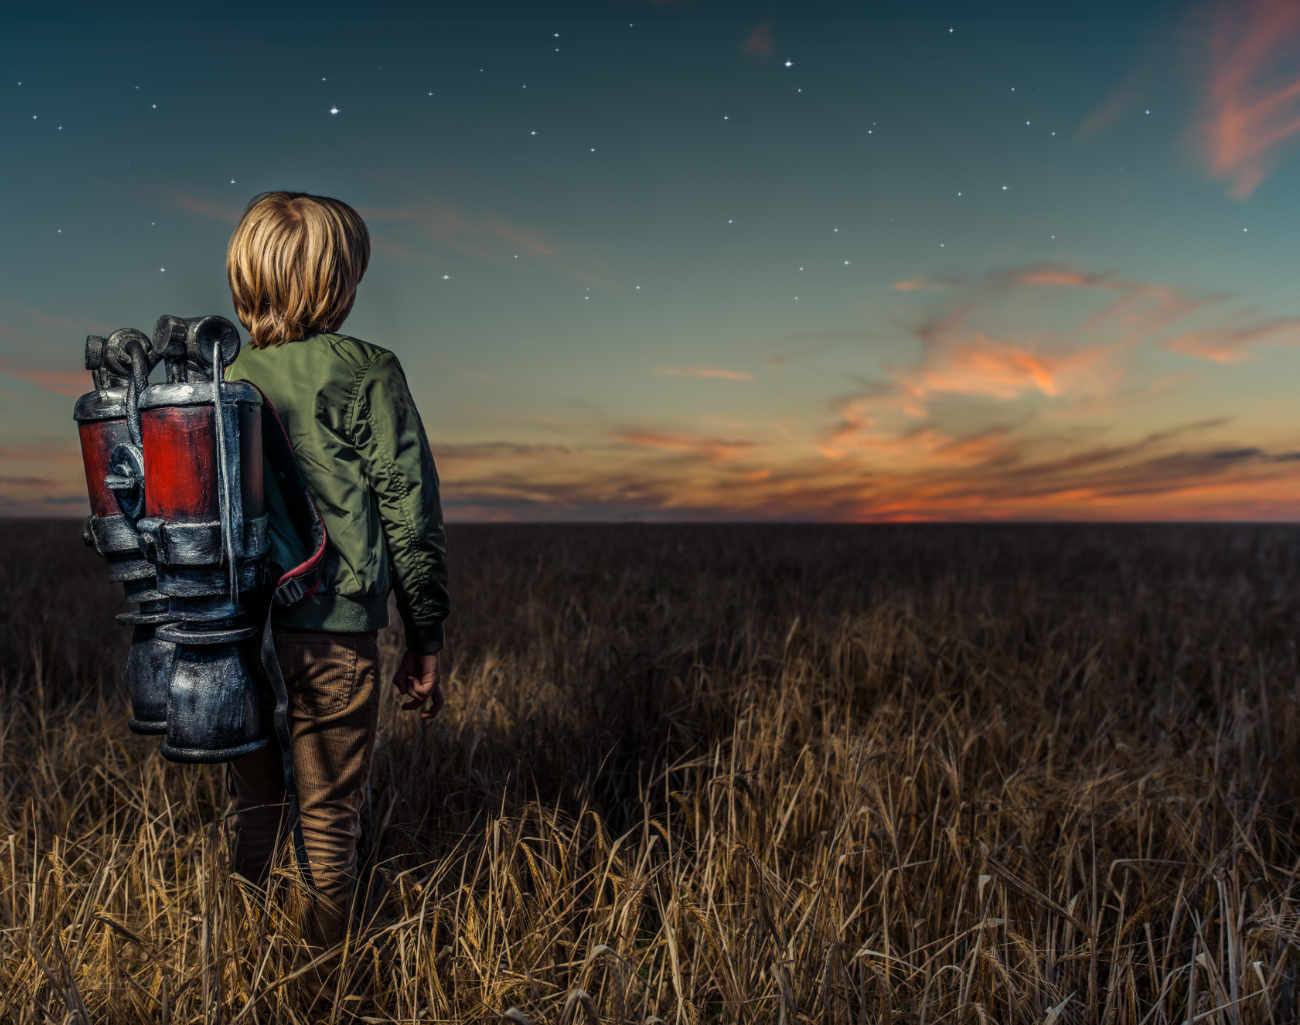 Creative marketing vs marketing data - image of boy in field with backpack